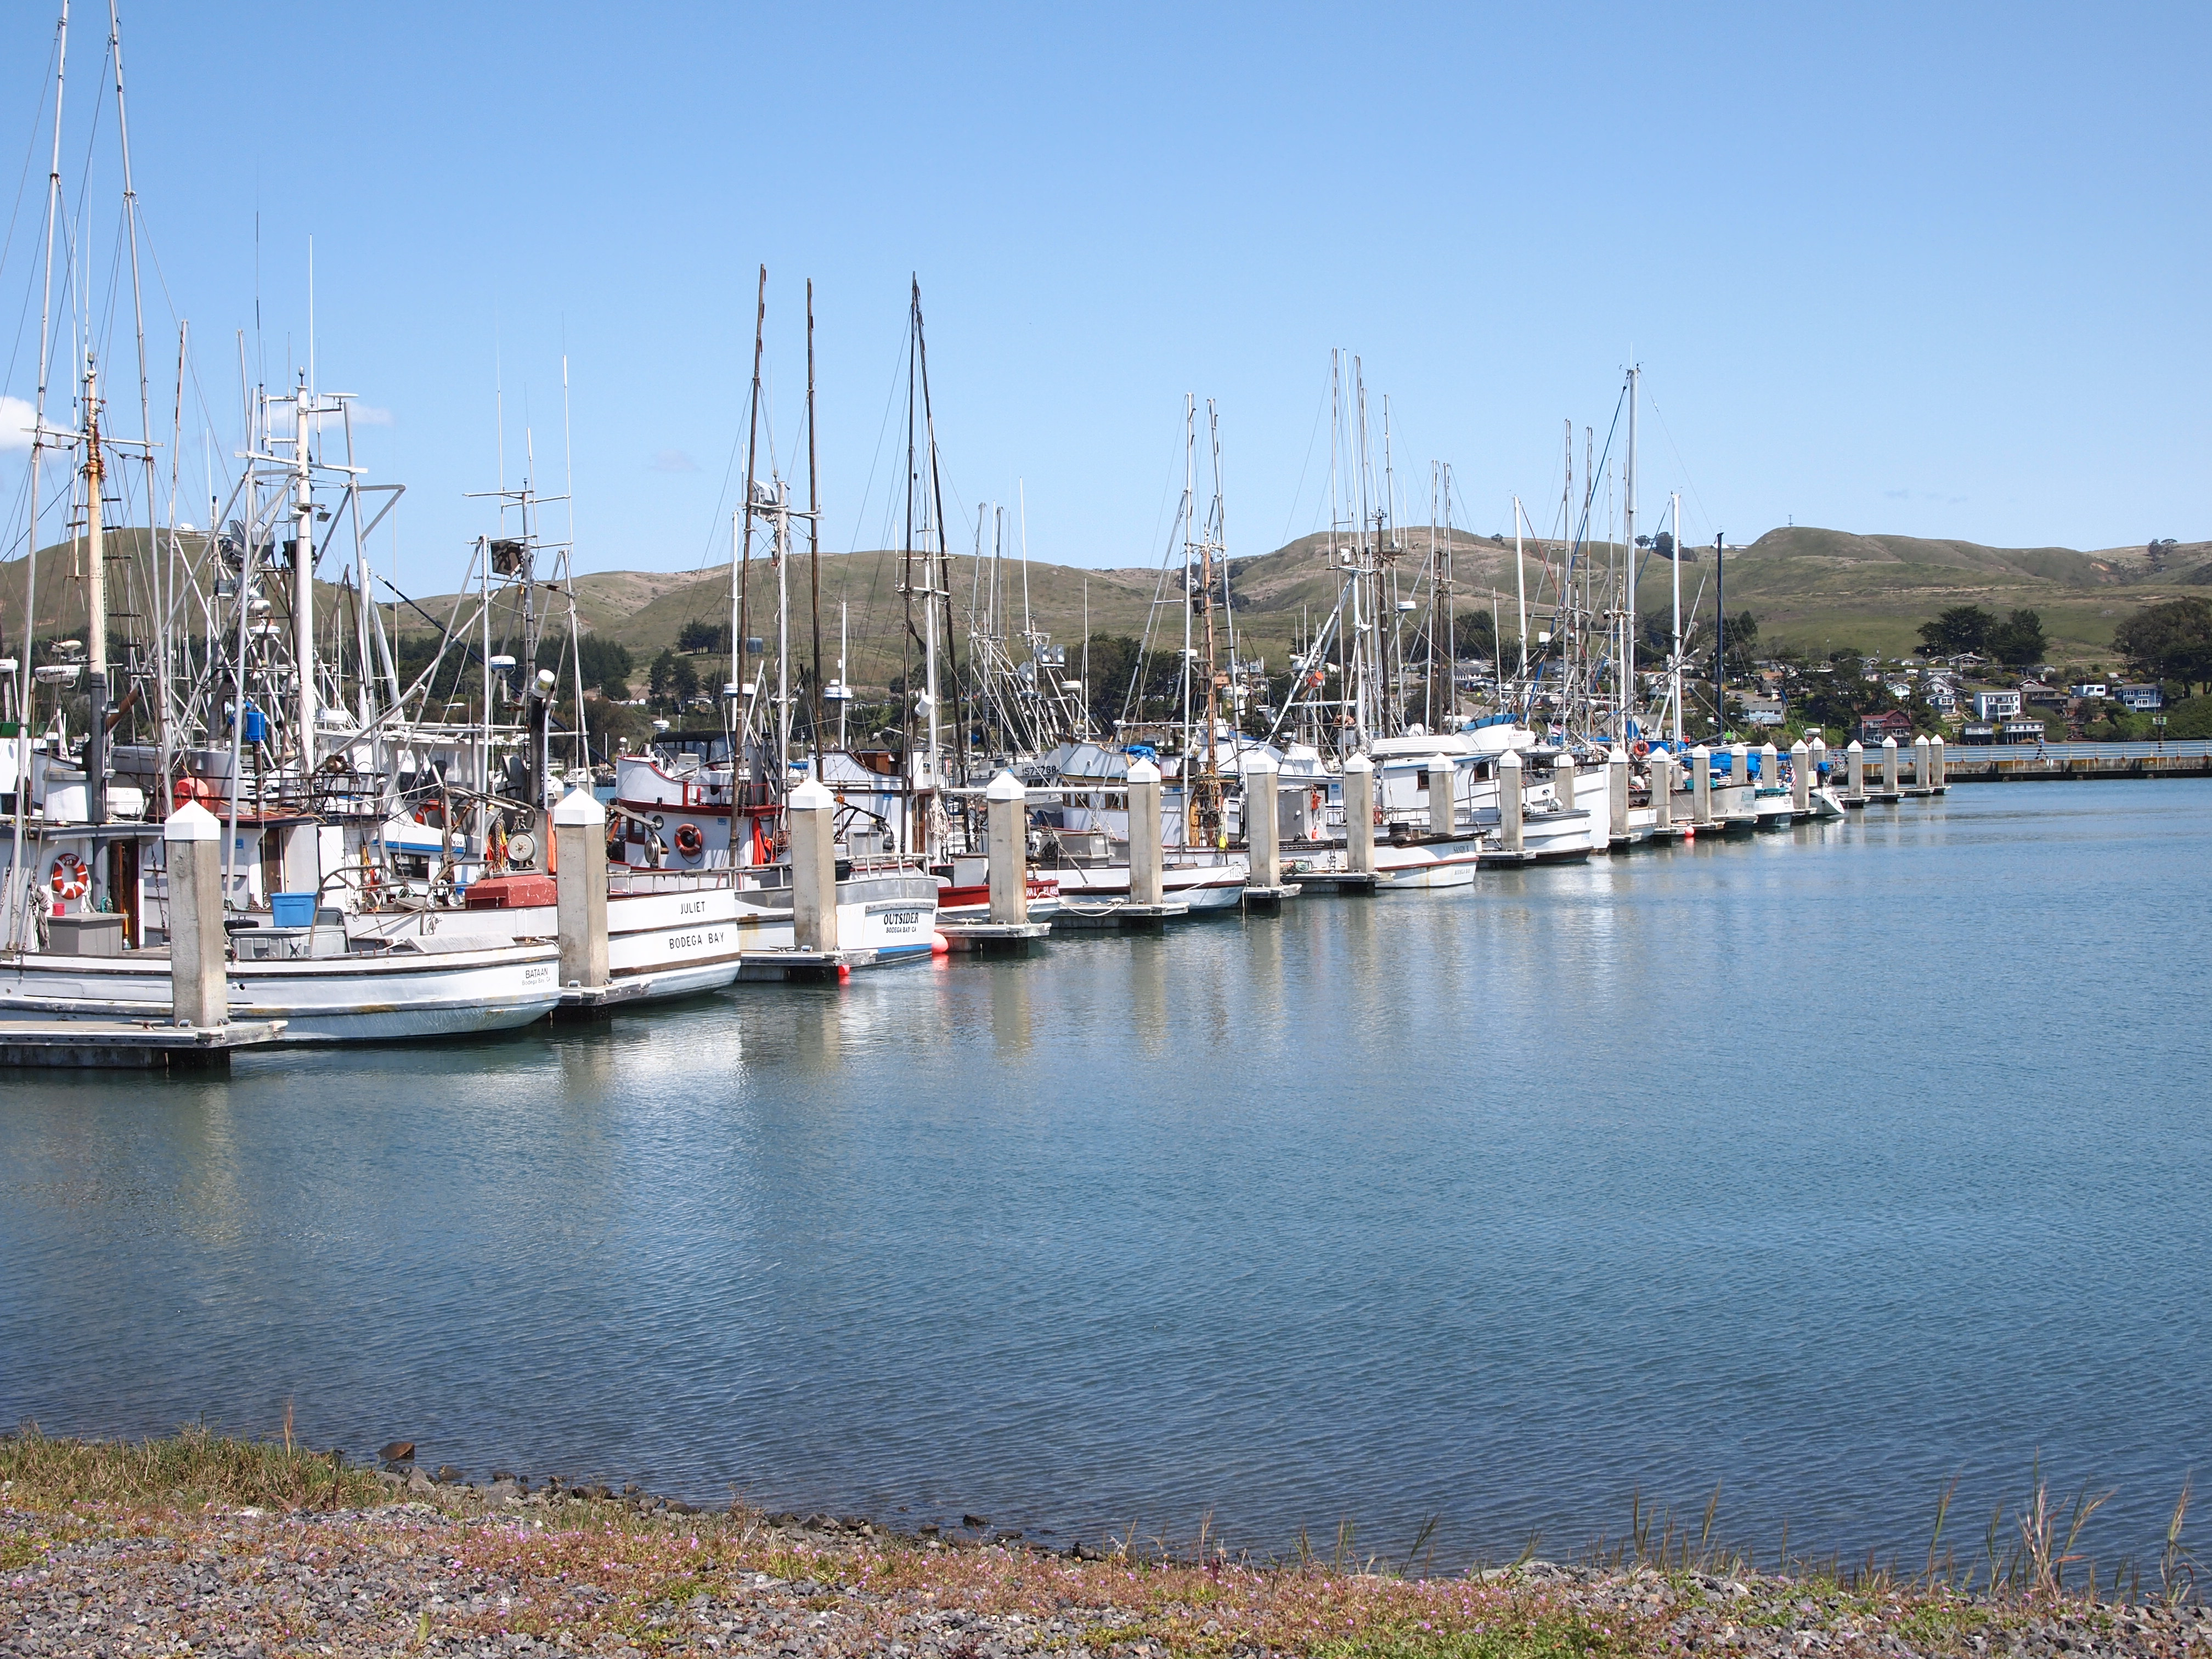 bodega bay Located at portuguese beach in sereno del mar, minutes to bodega bay and sonoma wine country 2 br, 2 ba and wall bed, hot tub, wifi, fireplace, sleeps 4-6.